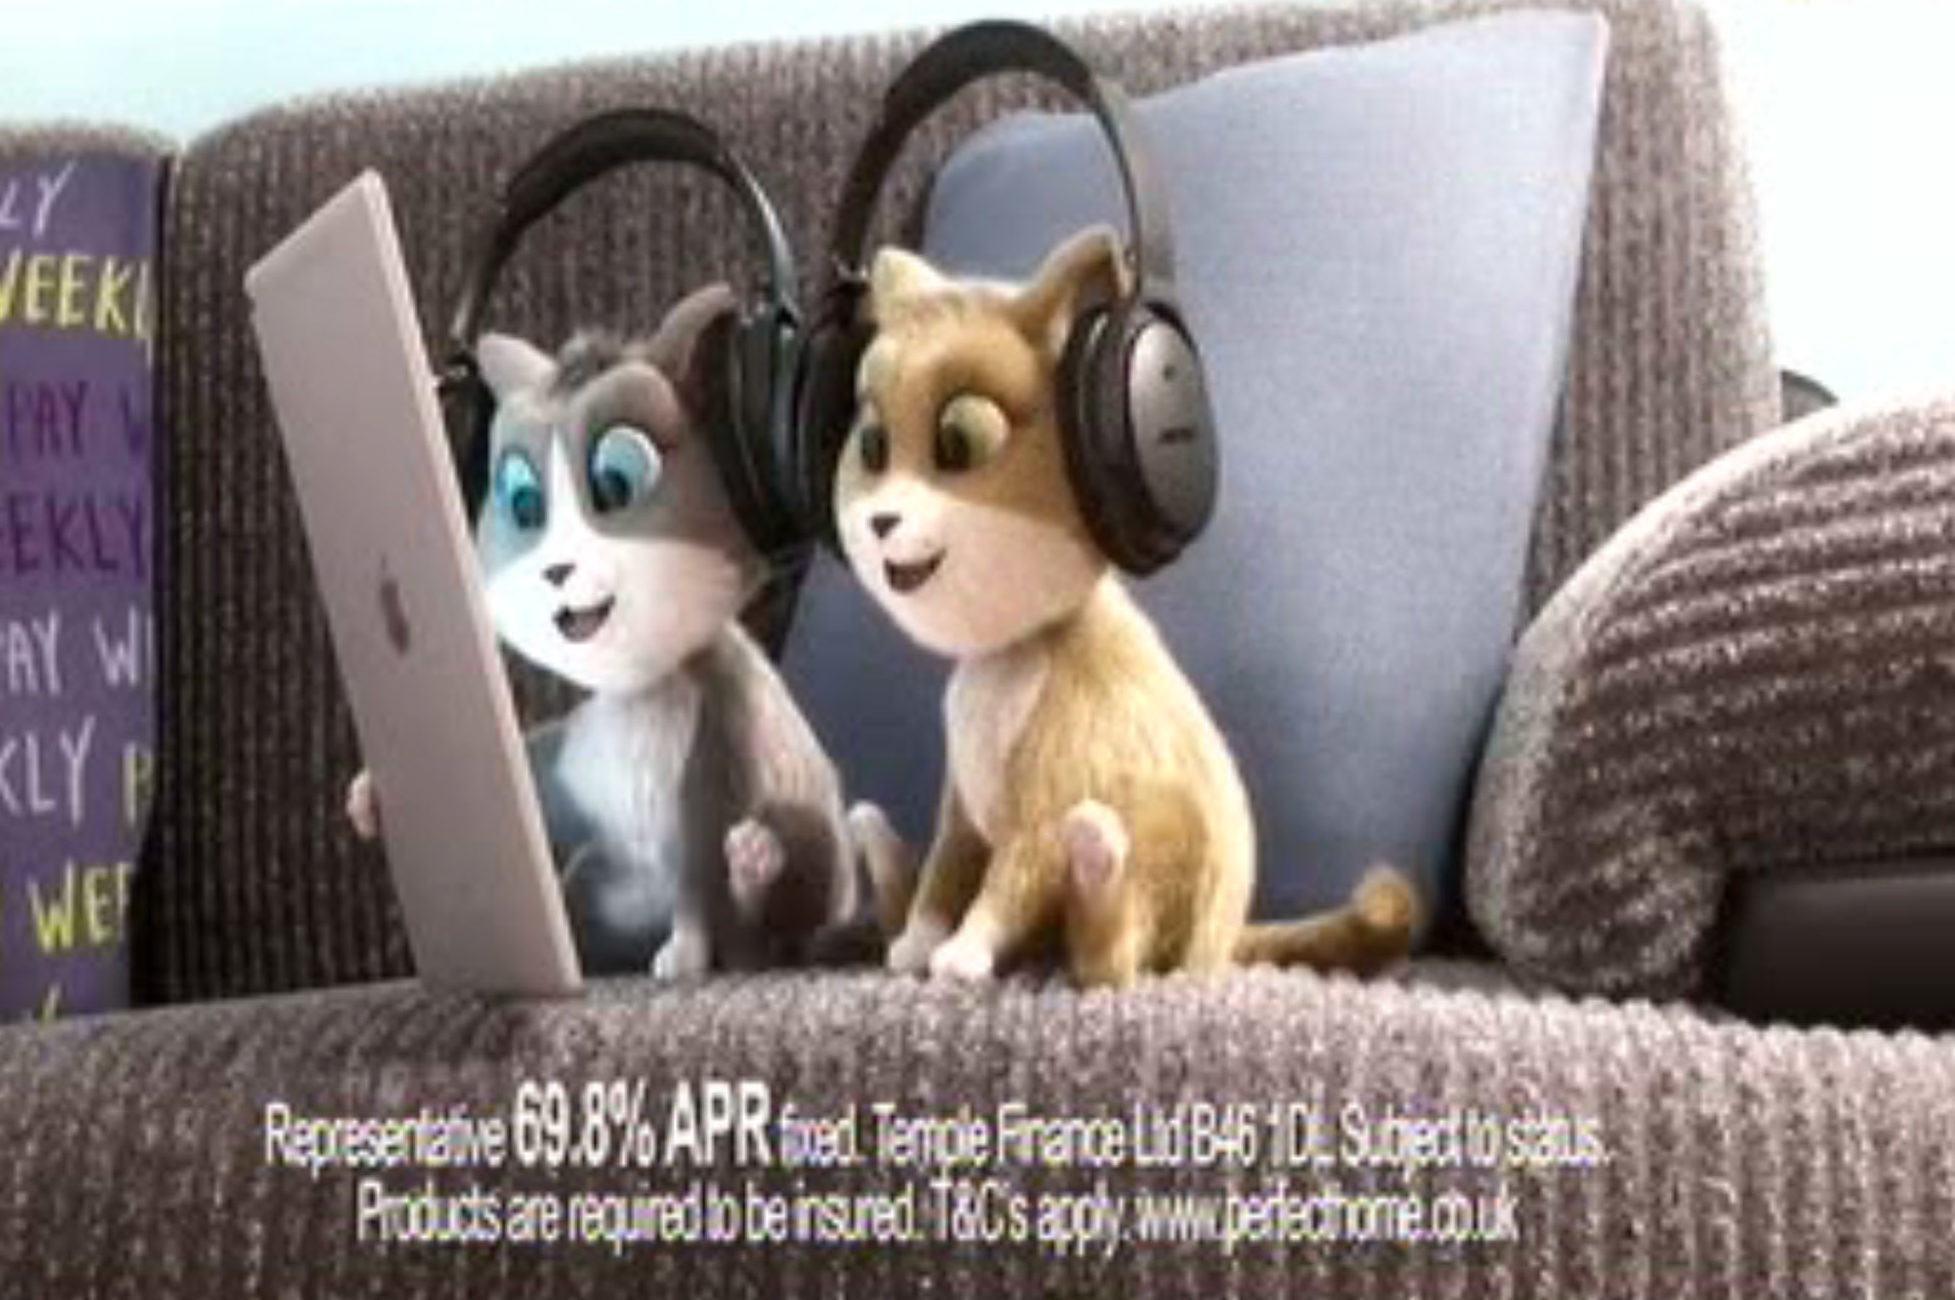 An advert for Perfect Home, a rent-to-own company, featuring the Fairground Attraction song Perfect over images of high-value items such as an iPad (ASA/PA Wire)